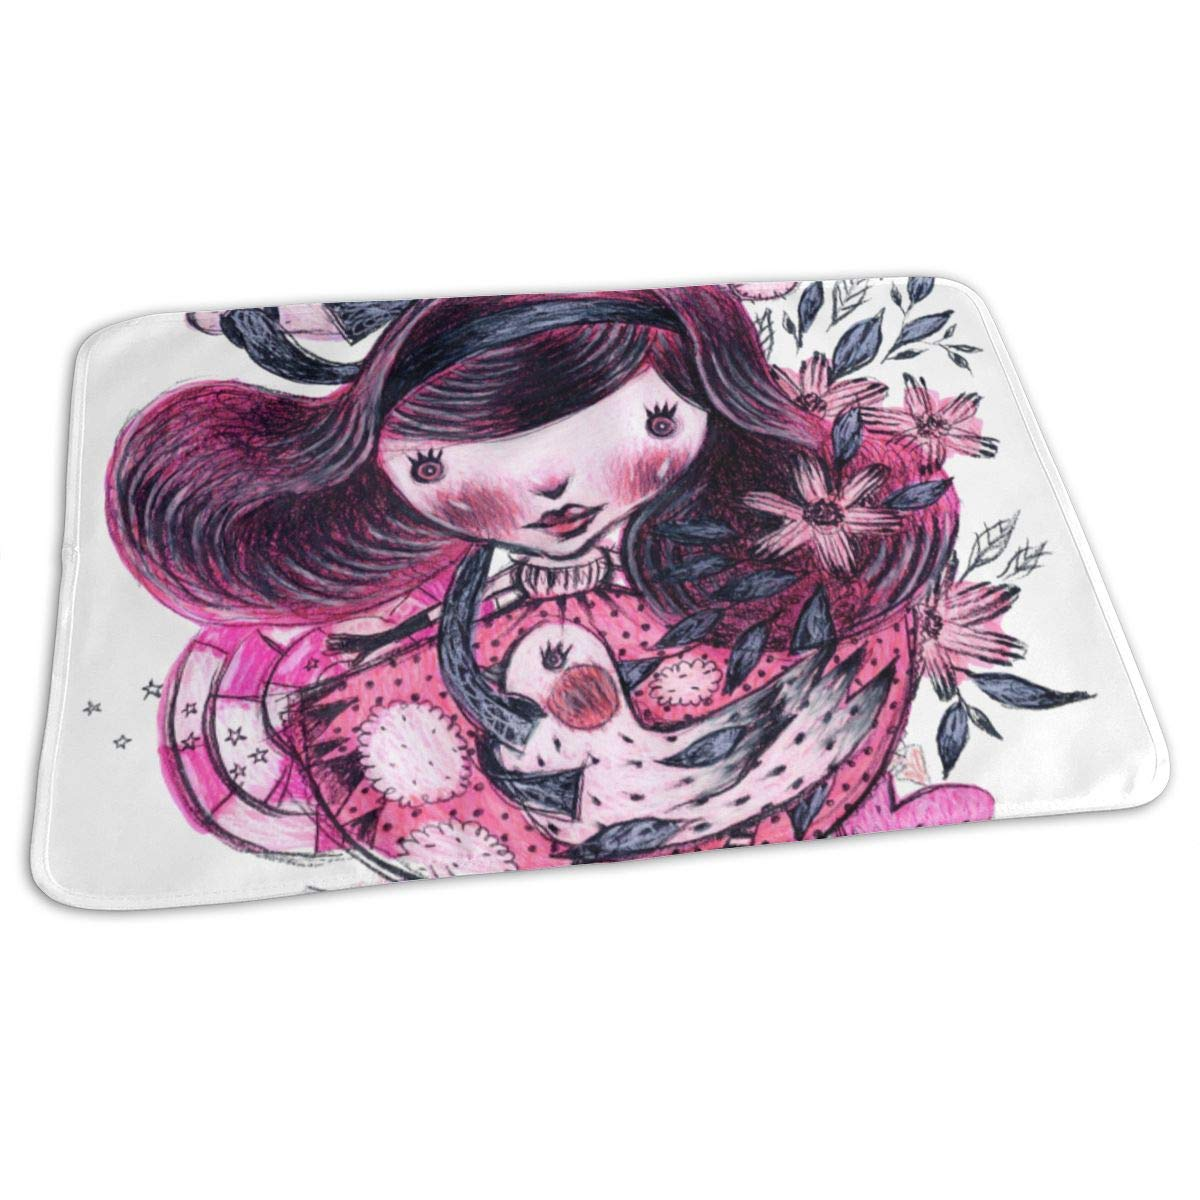 Osvbs Lovely Baby Reusable Waterproof Portable Pink Cute Horror Girl Changing Pad Home Travel 27.5''x19.7'' by Osvbs